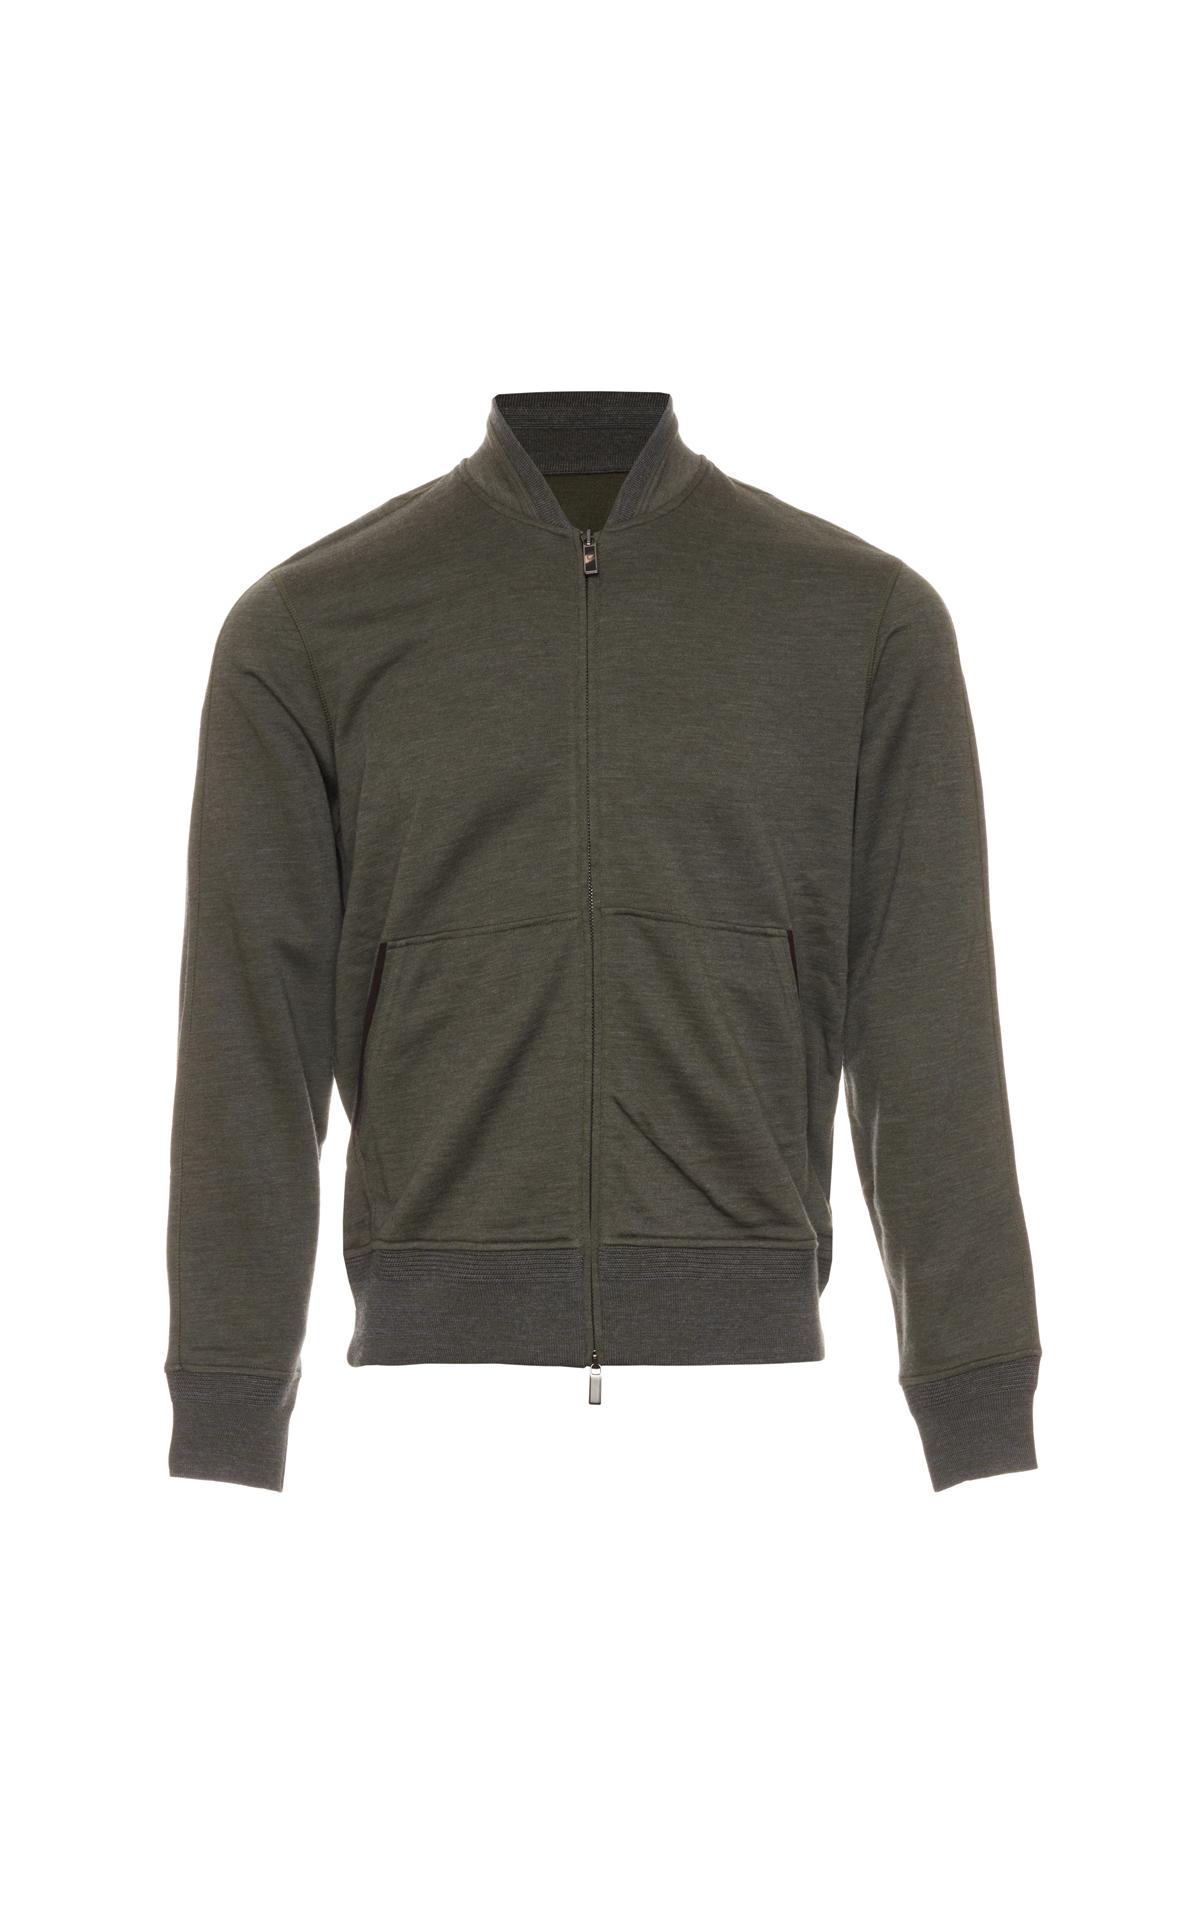 Ermenegildo Zegna Zip up green knitwear from Bicester Village